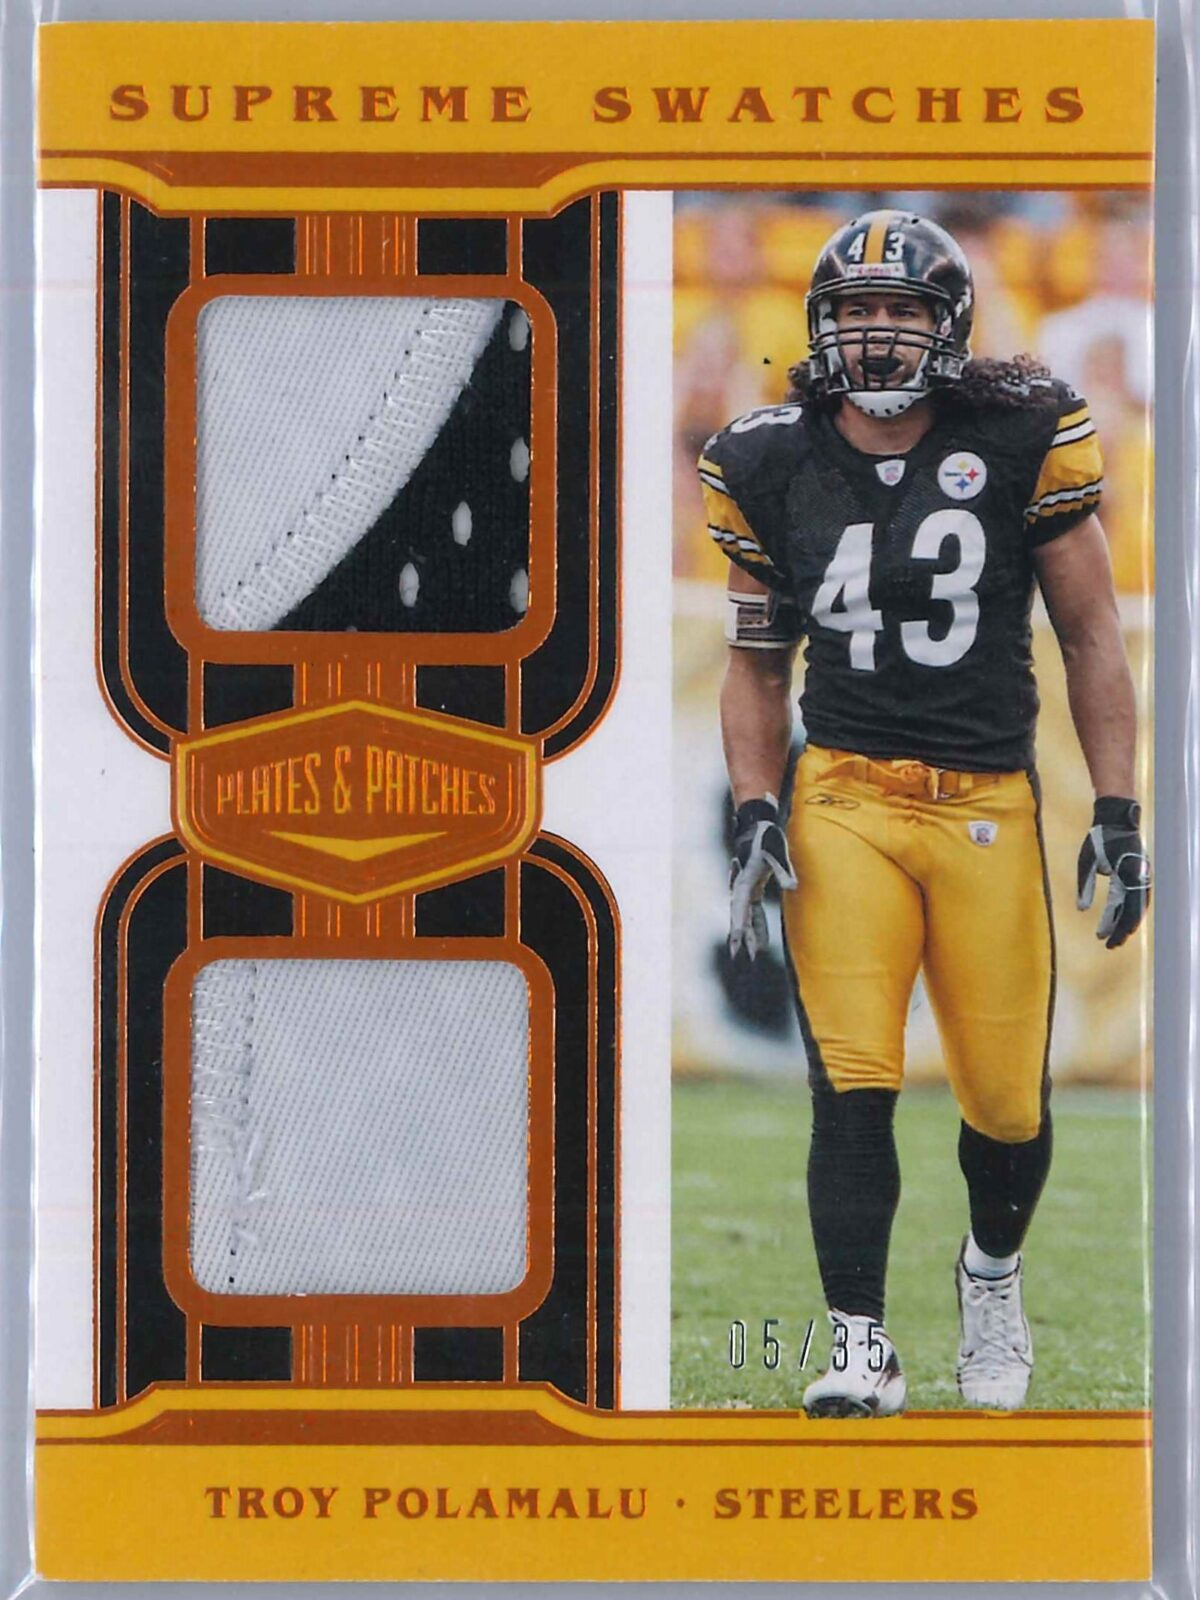 Troy Polamalu Panini Plates and Patches 2020 Supreme Swatches 05/35 2-Color Patch